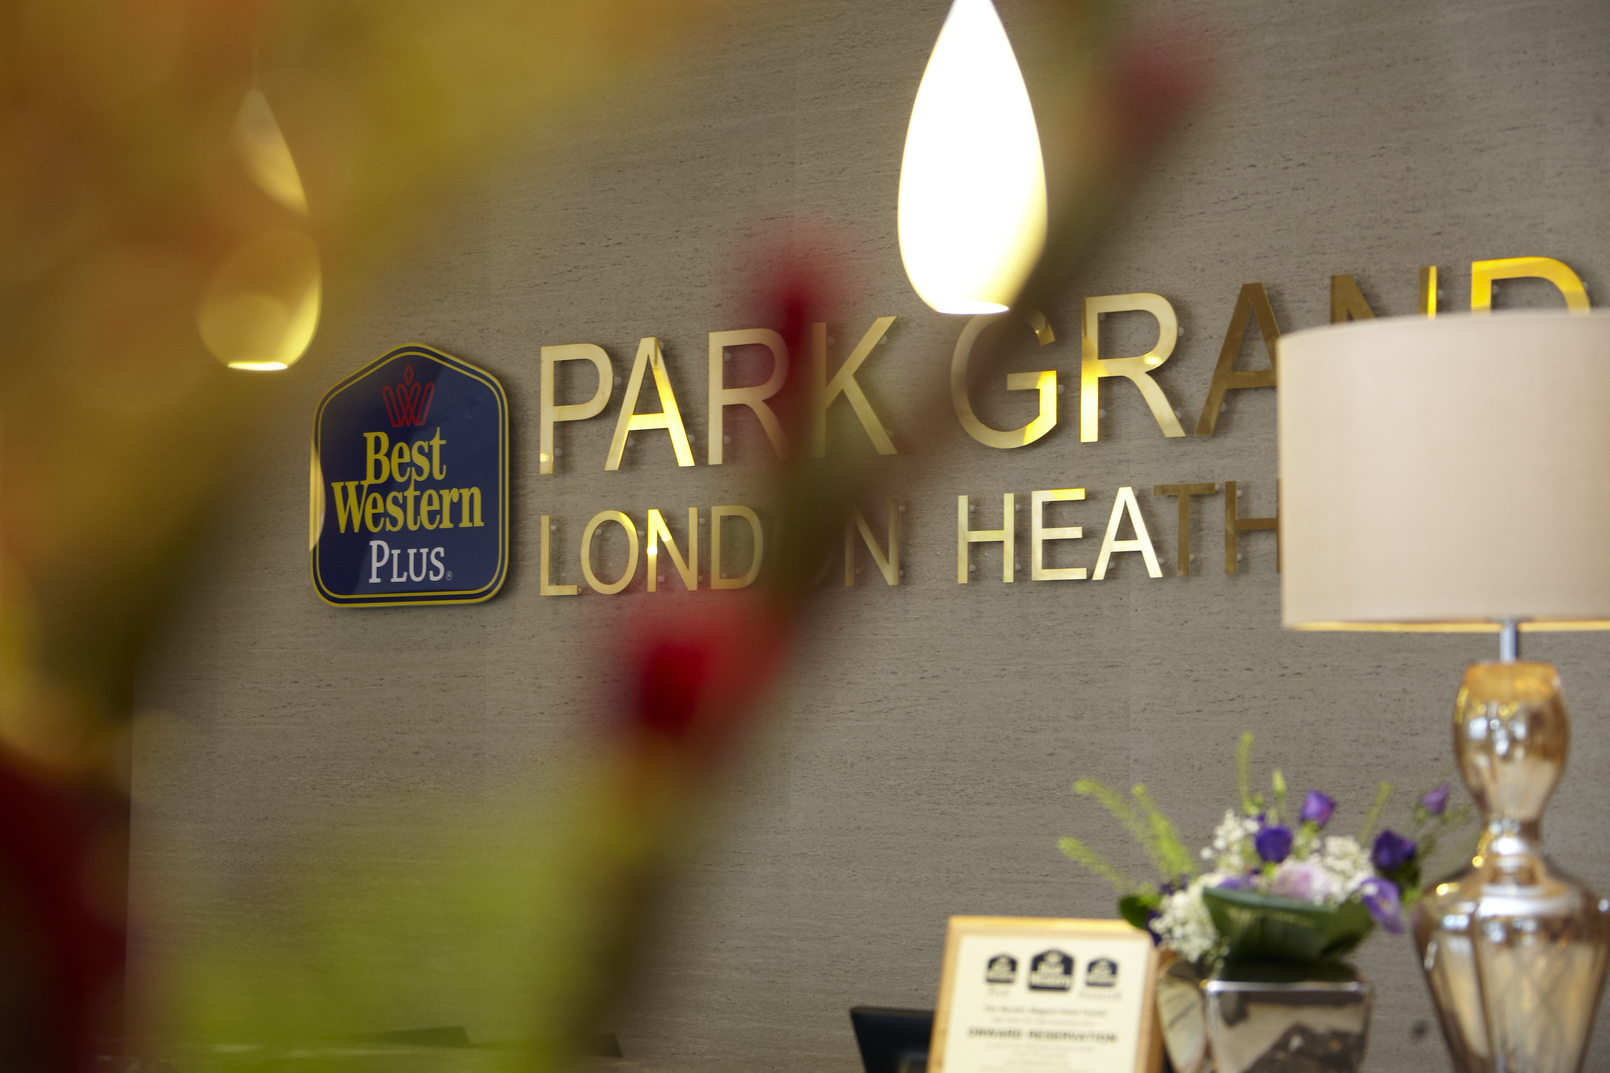 Best Western Park Grand Hotel London Heathrow